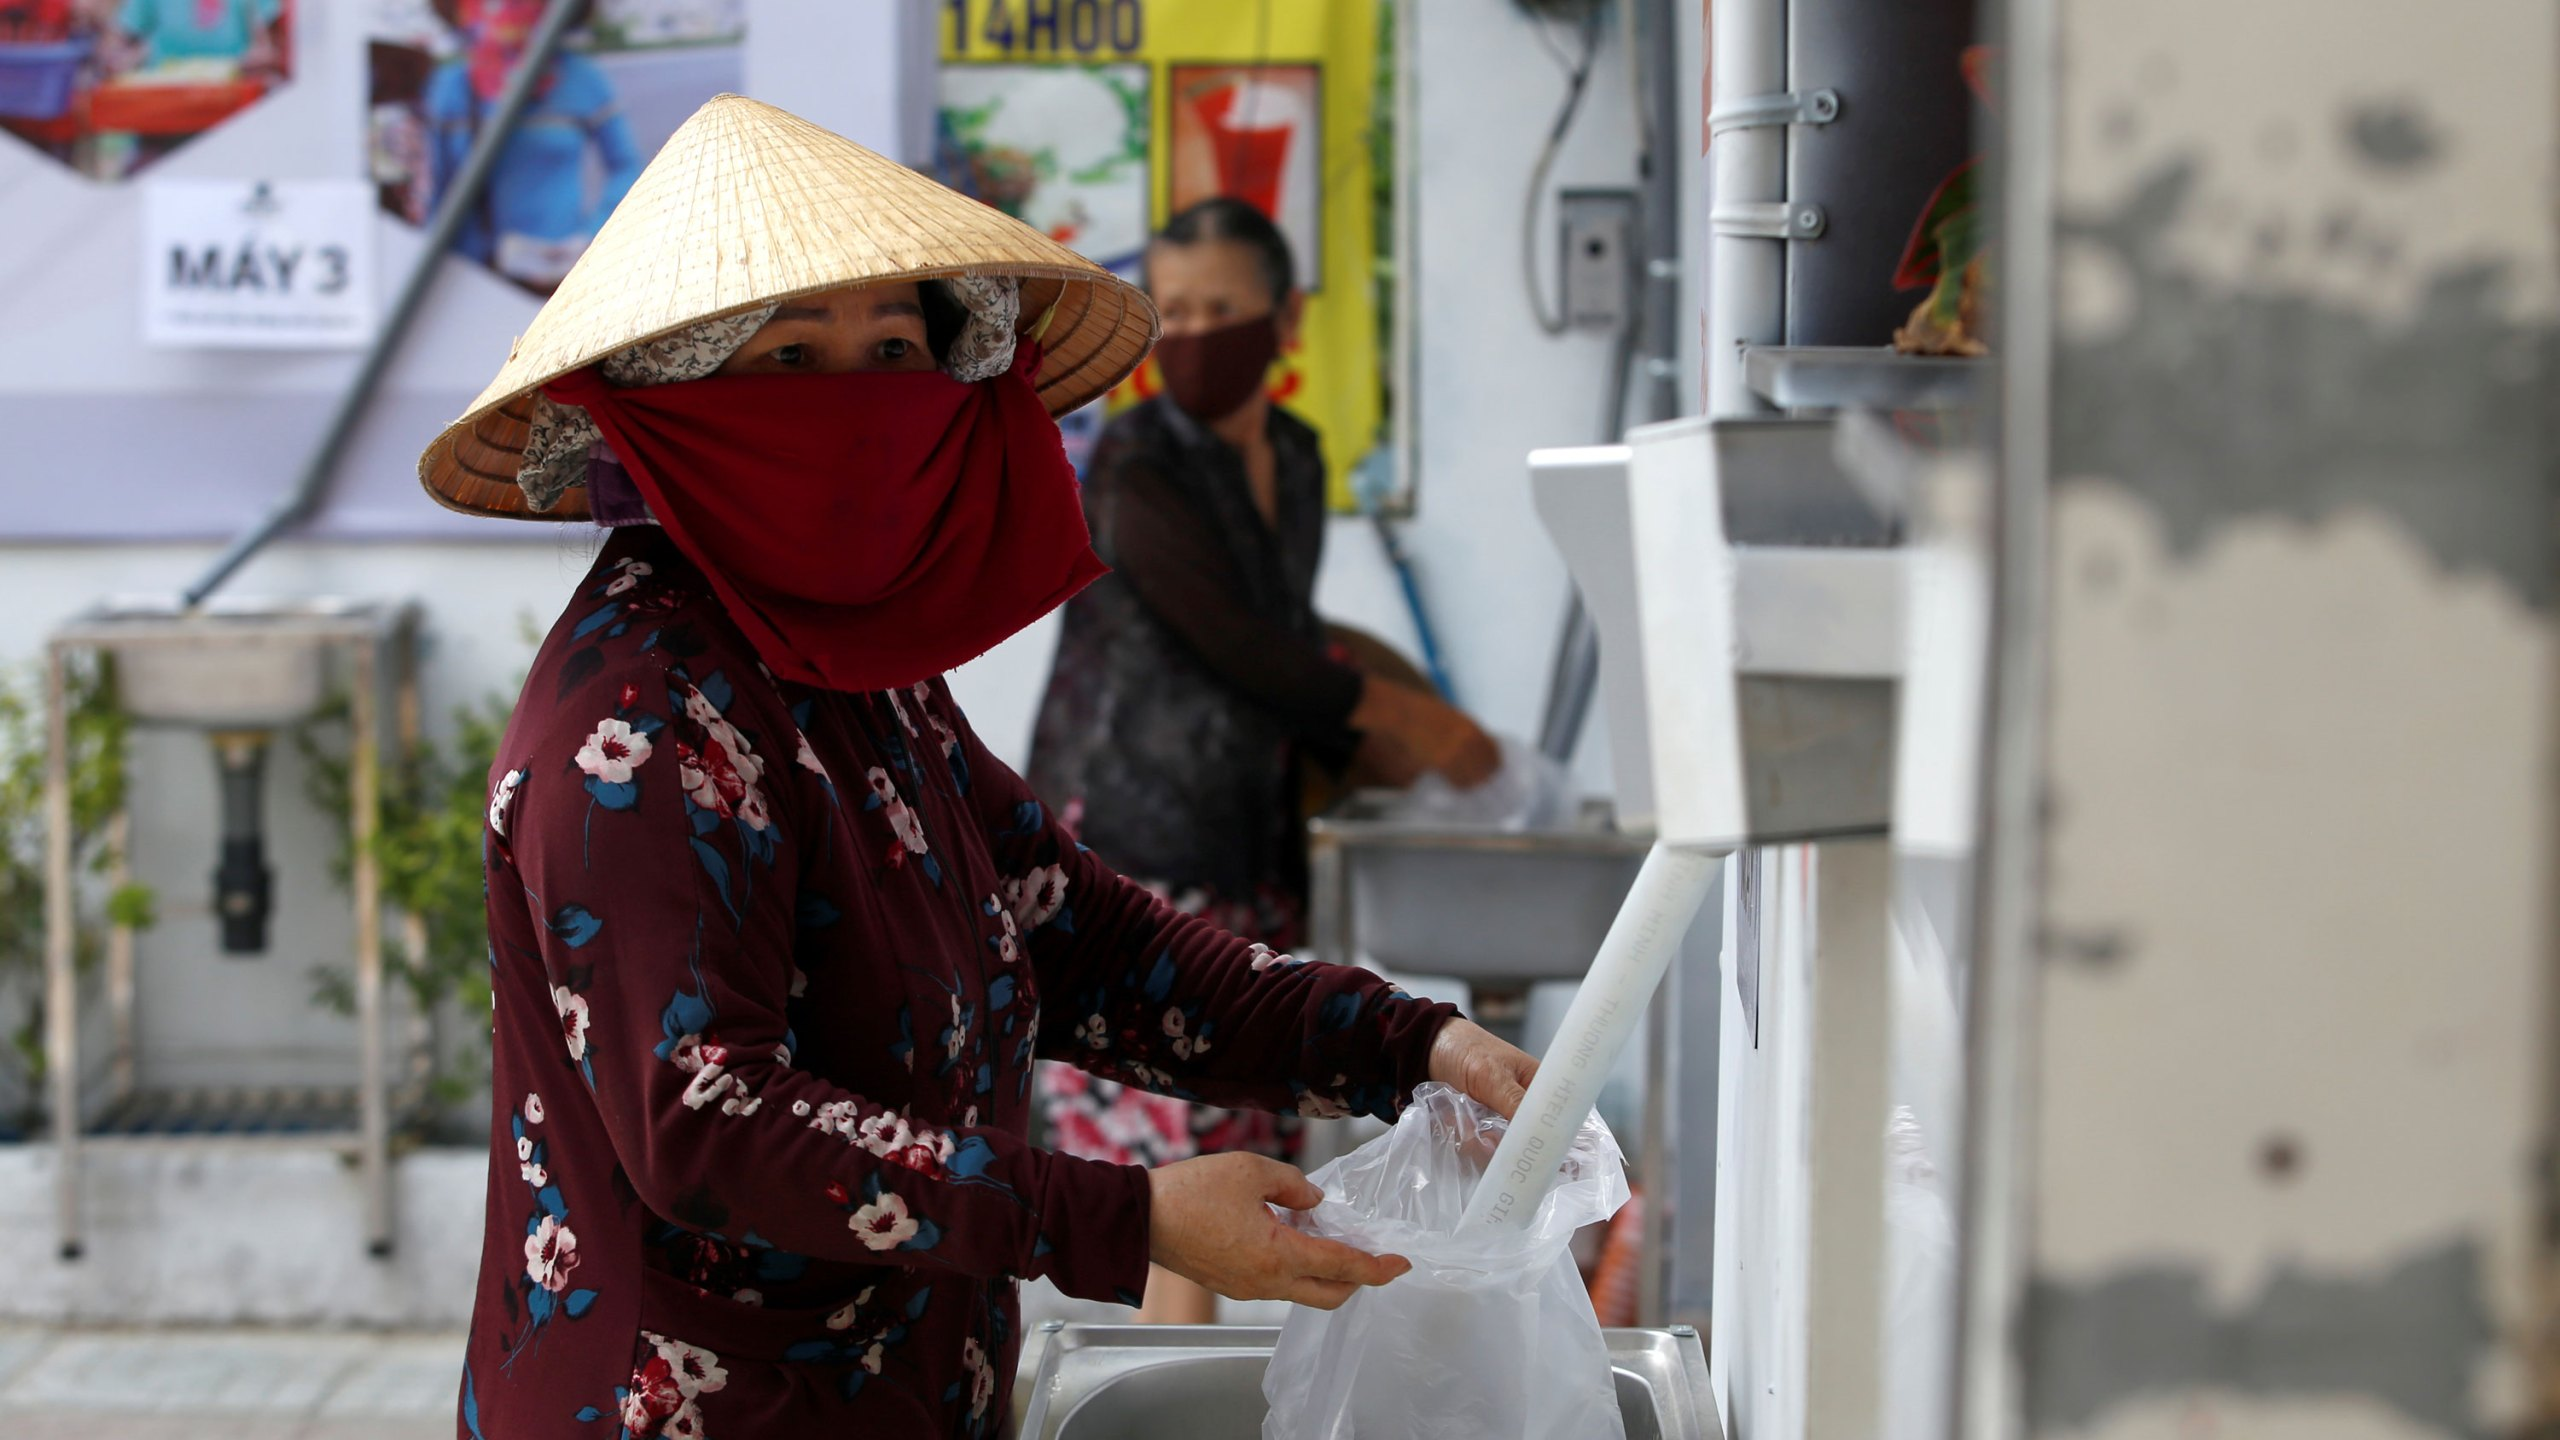 A woman fills a plastic bag with rice from a 24/7 automatic rice dispensing machine in Ho Chi Minh City, Vietnam, on April 11, 2020. (Yen Duong/Reuters)